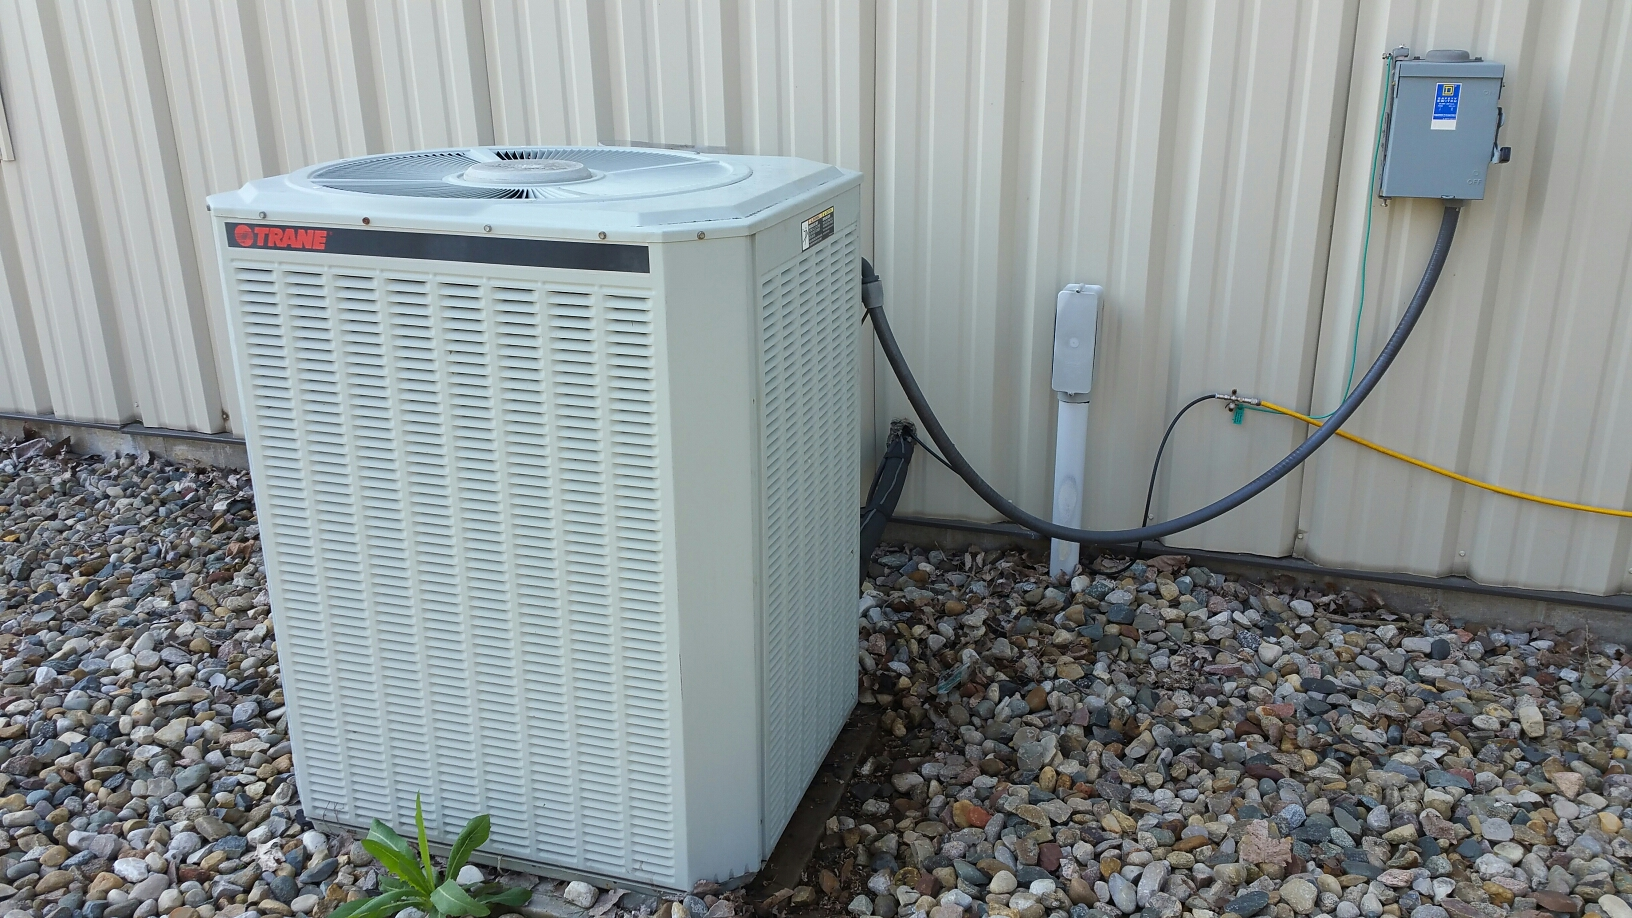 Bremen, IN - Repair Trane commercial 3 phase air conditioner